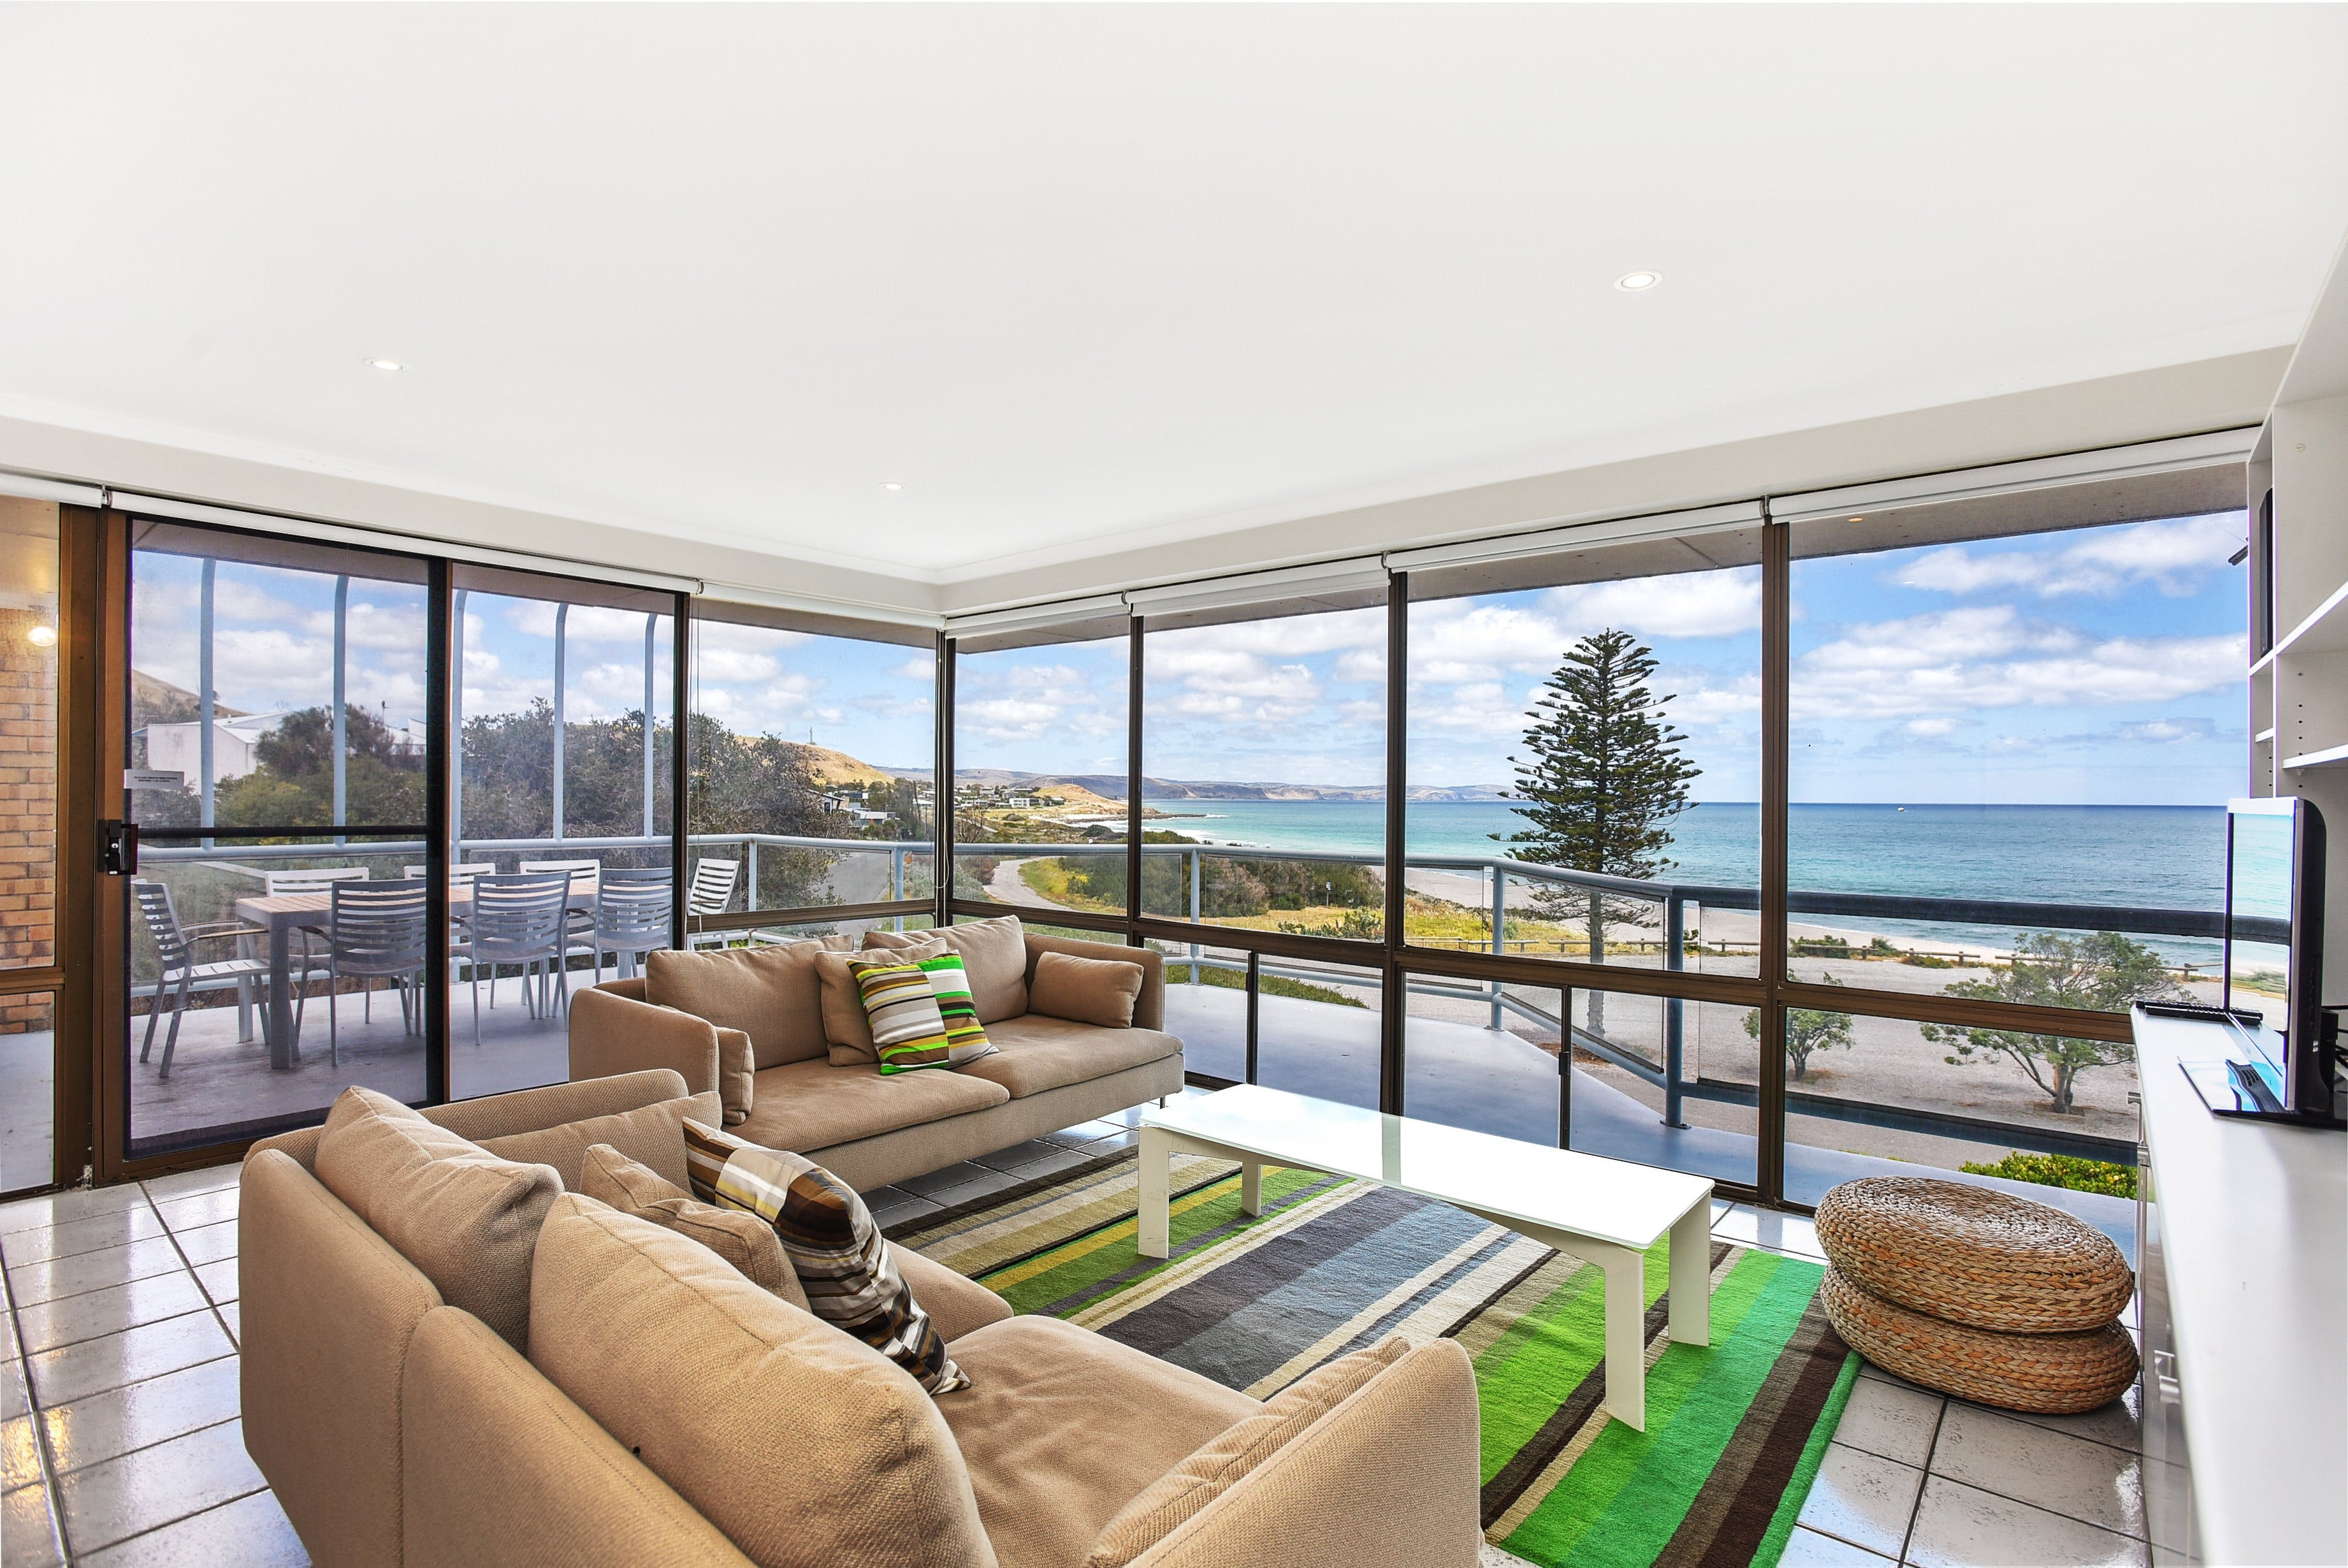 2/101 Gold Coast Drive Carrickalinga - Accommodation Whitsundays